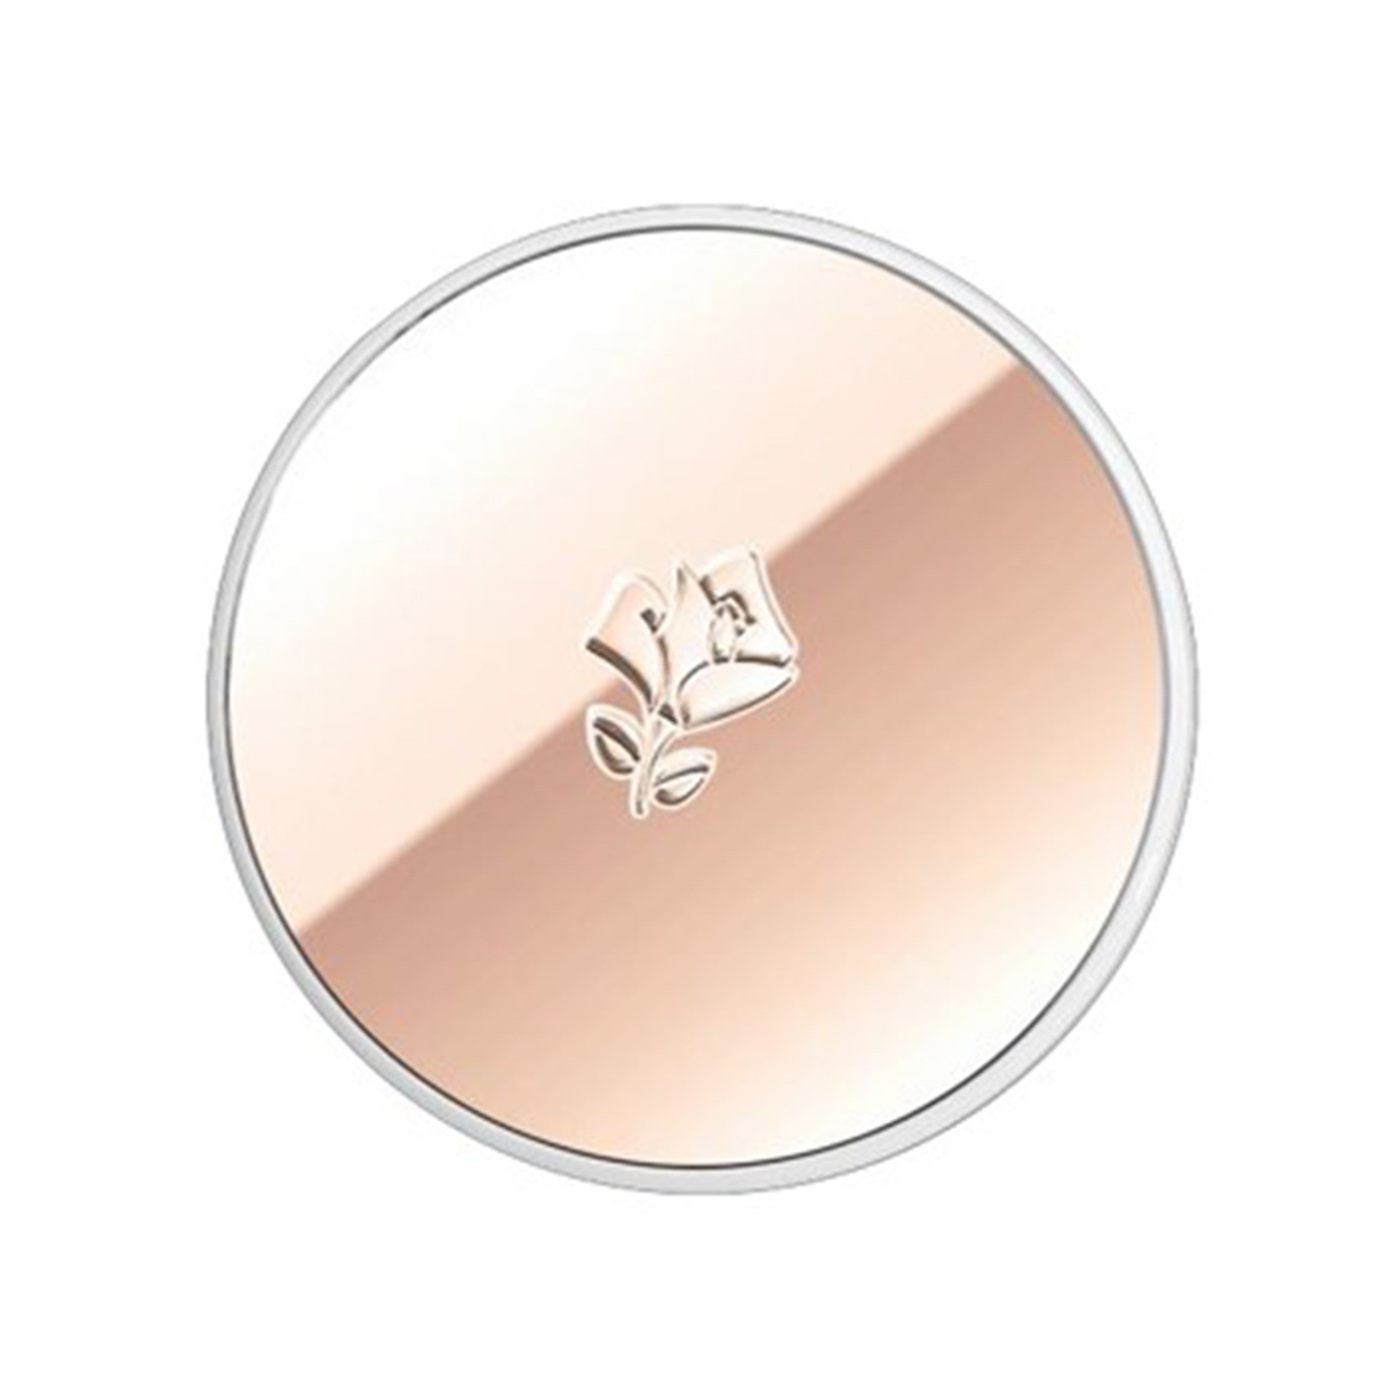 Lancome Blanc Expert Cushion Compact Case High Coverage